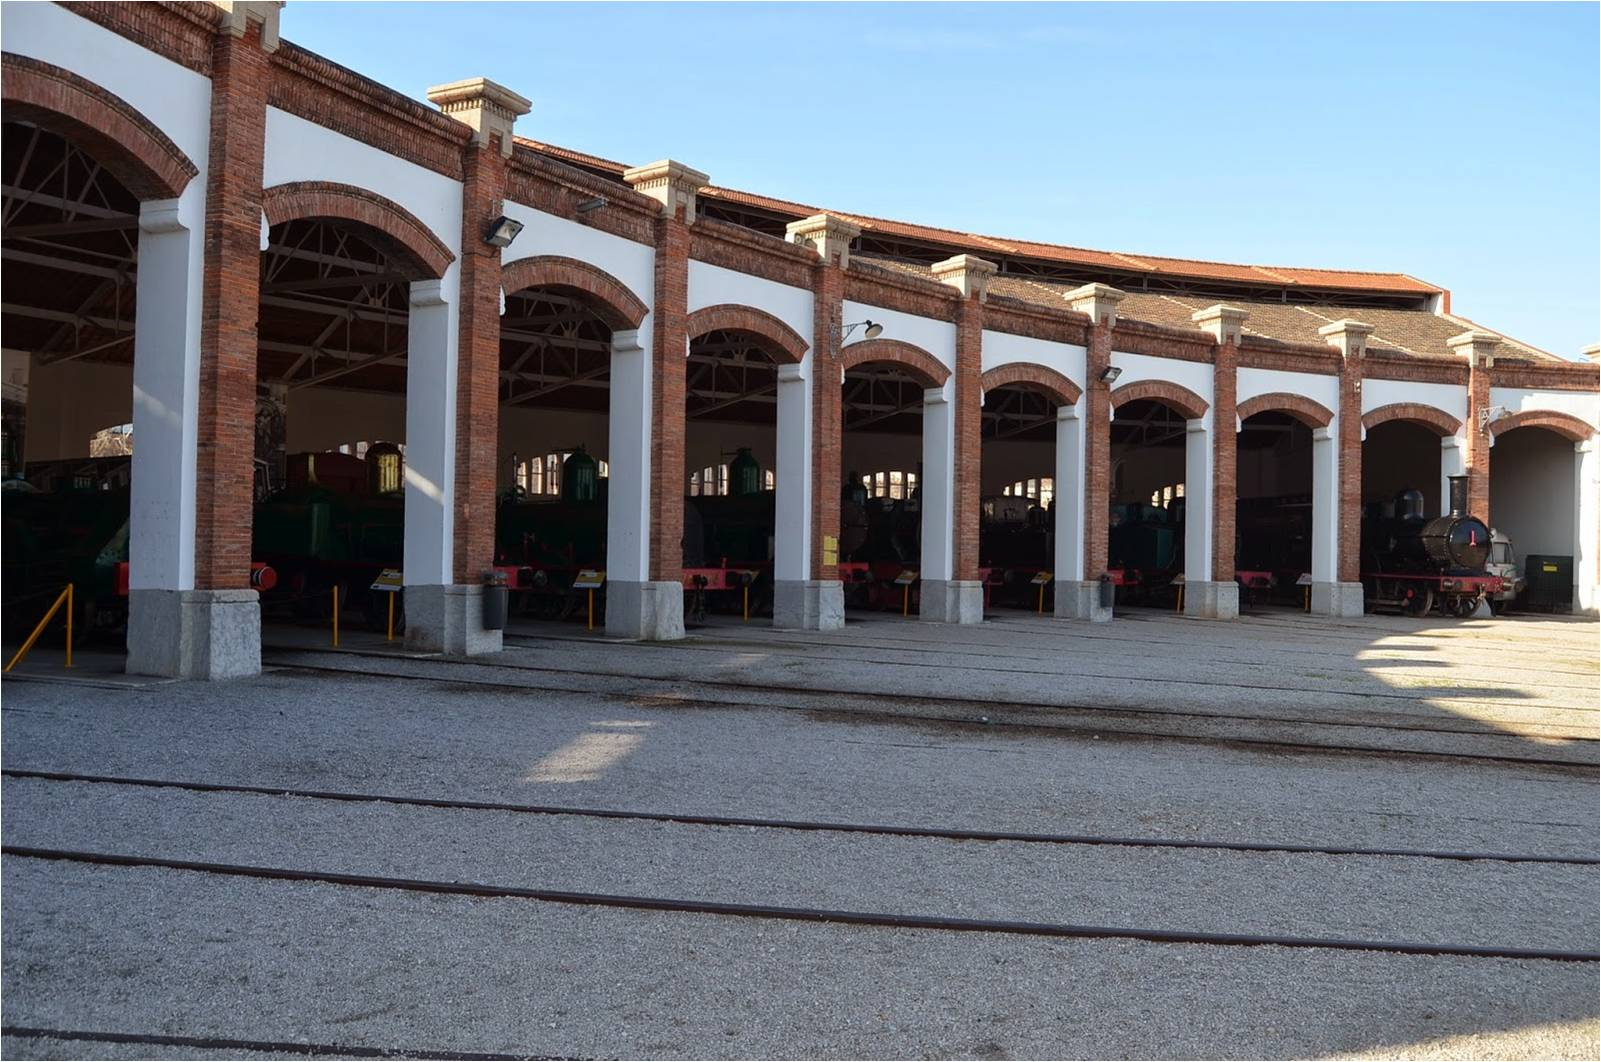 REFURBISHMENT OF CATALONIA RAILWAY MUSEUM